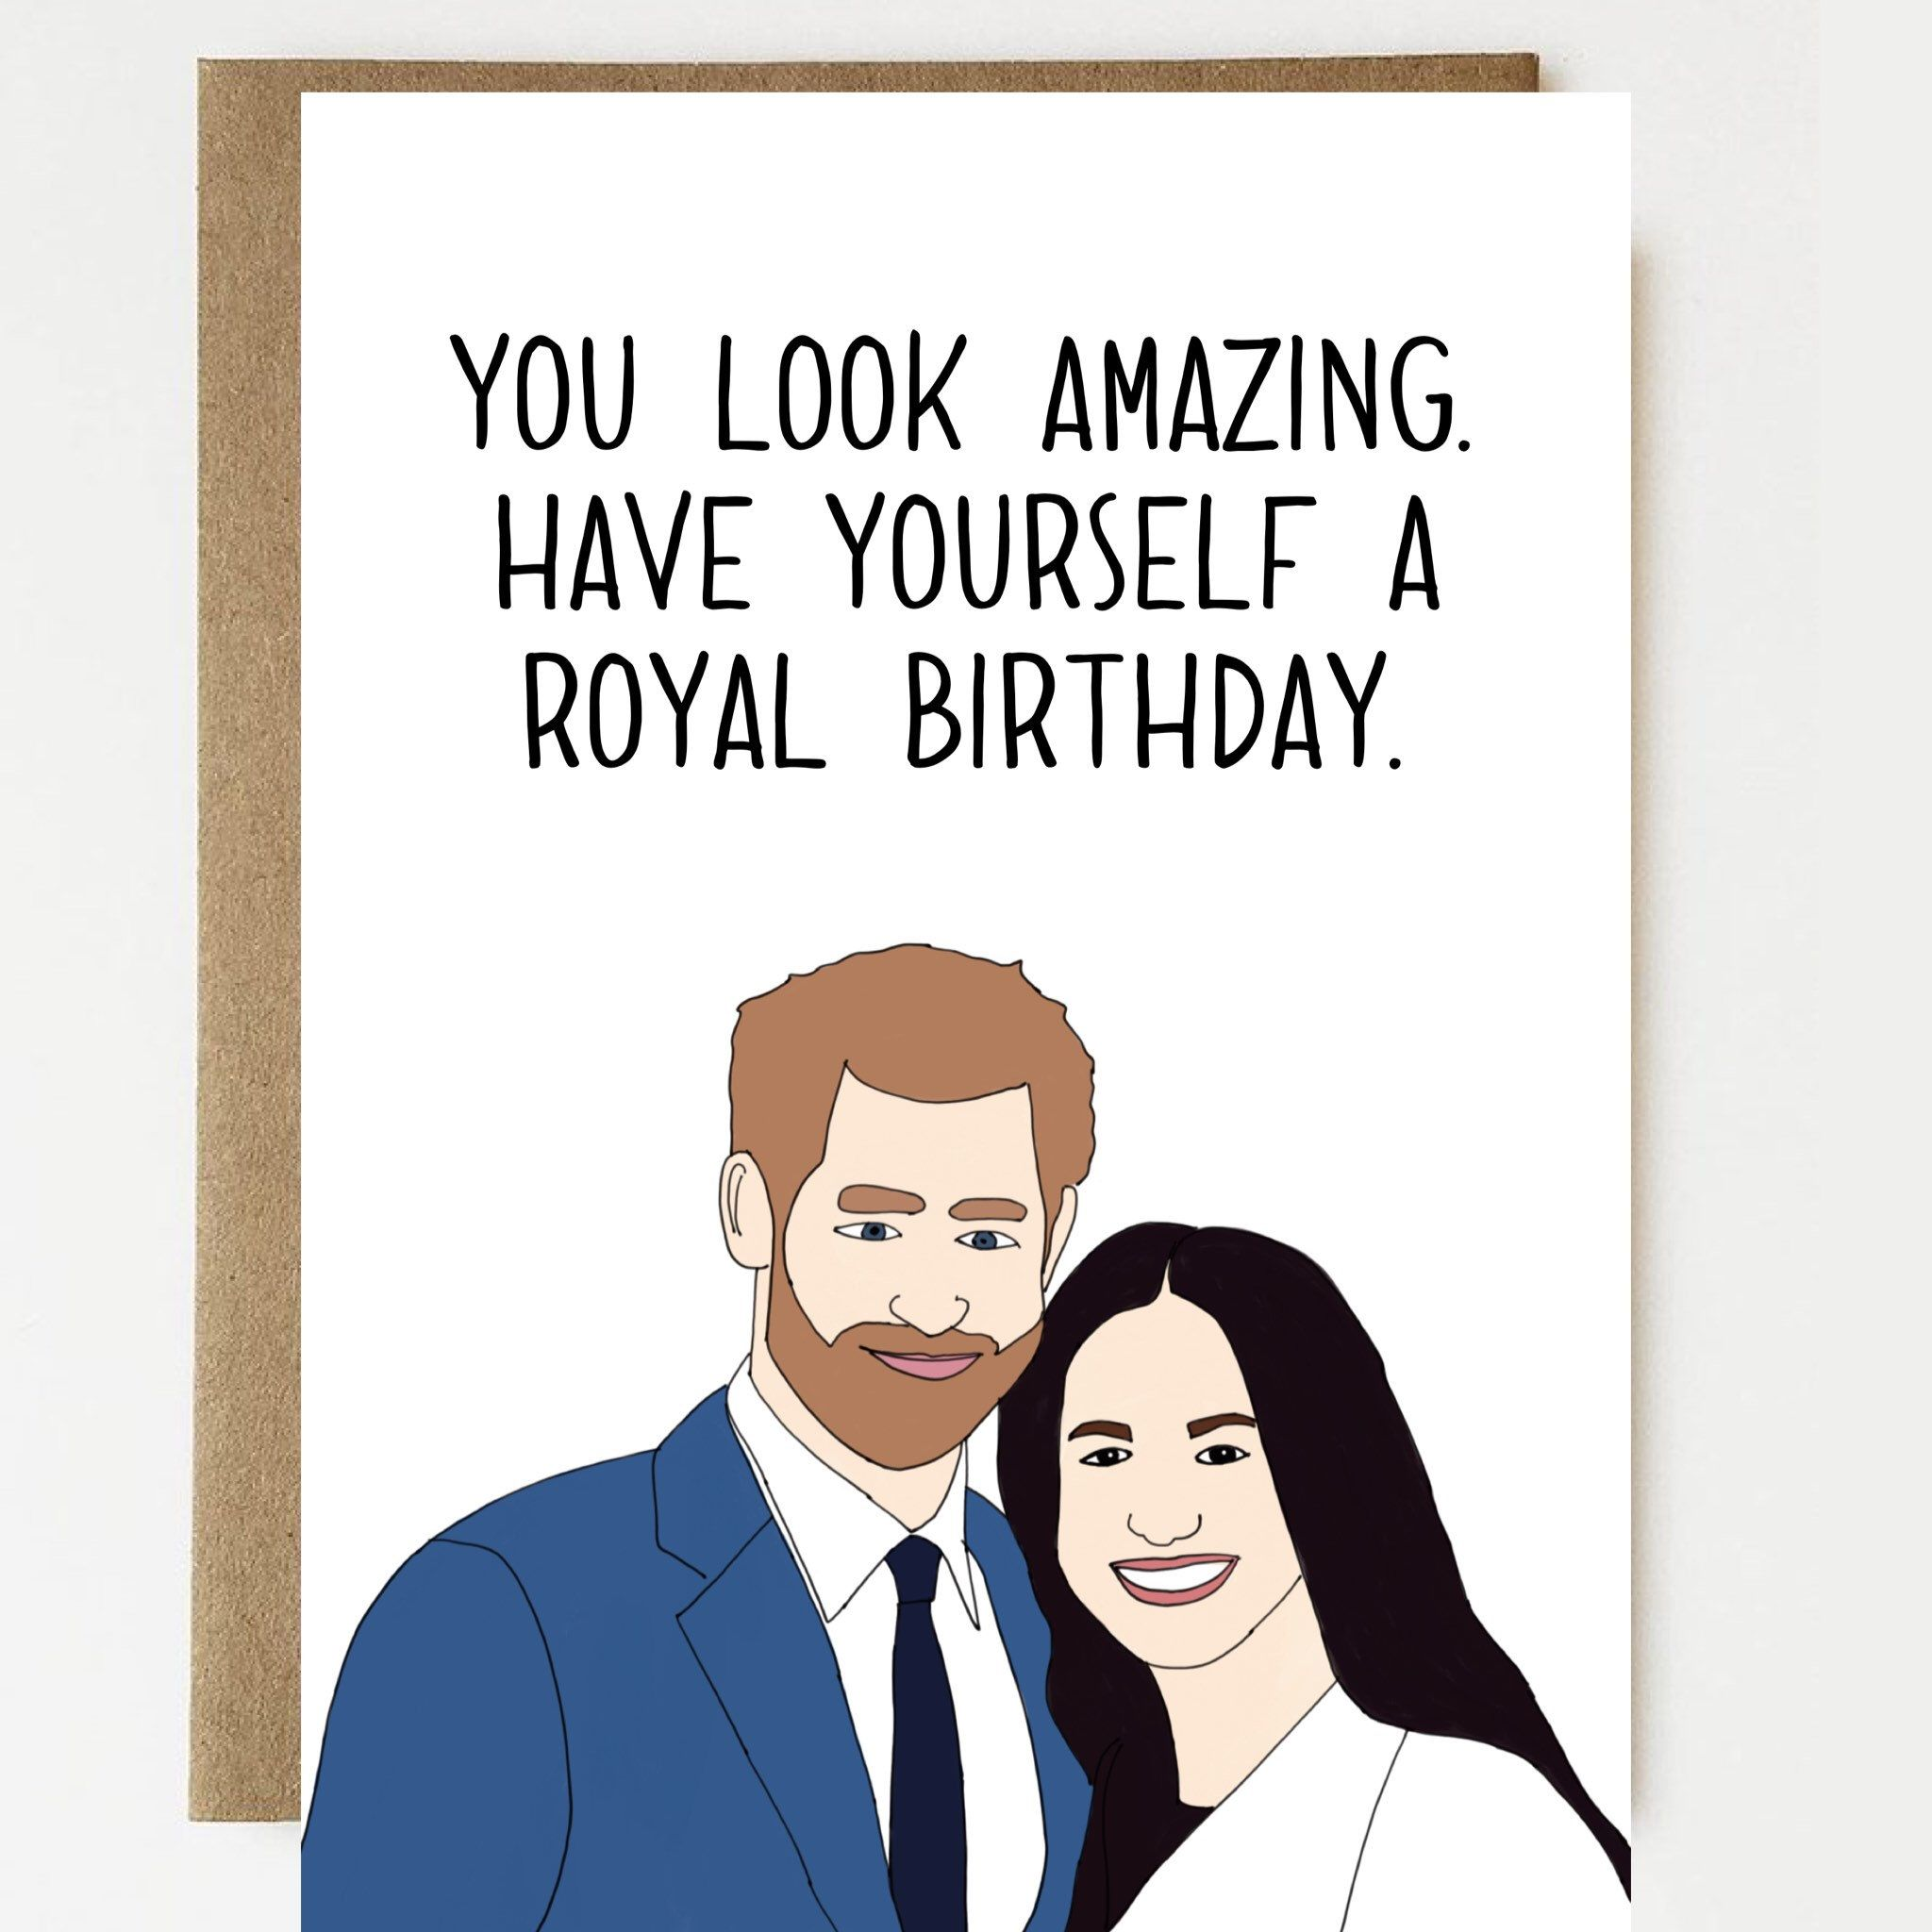 Funny Jon Snow Game Of Thrones Inspired Birthday Card X8 Kendrick T Shirt Size M Excited To Share The Latest Addition My Etsy Shop Prince Harry And Meghan Markle Happy Parody For